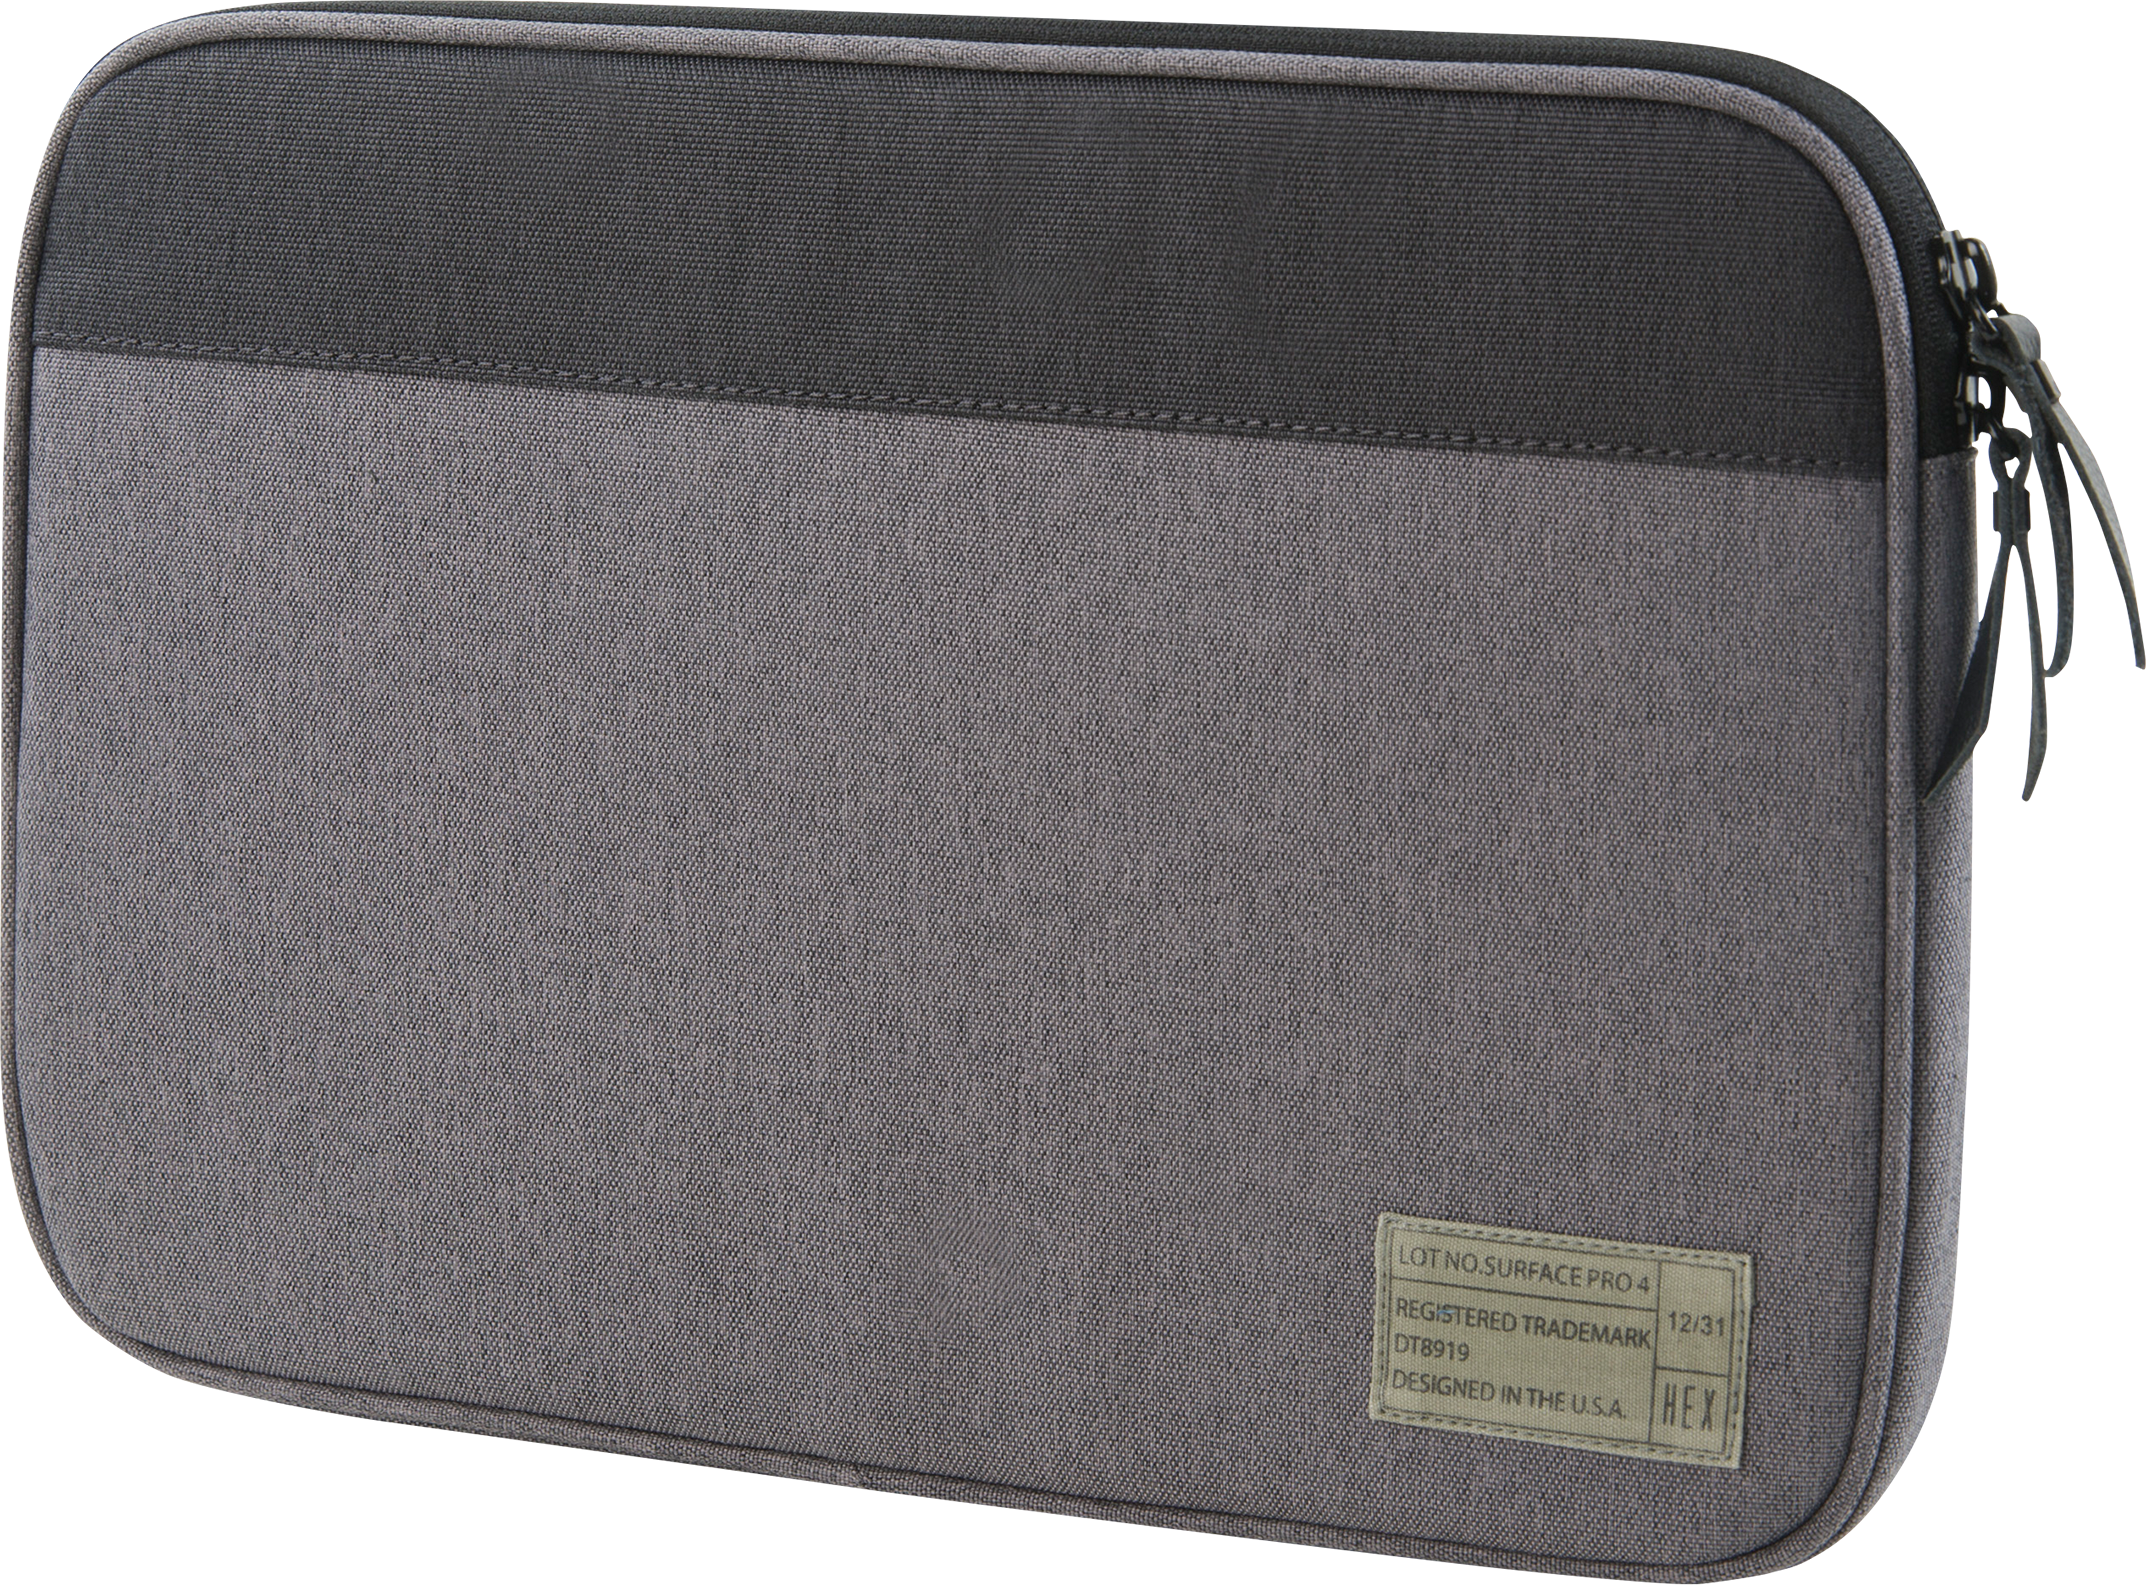 HEX Surface Pro 4 Sleeve with Rear Pocket (Grey)